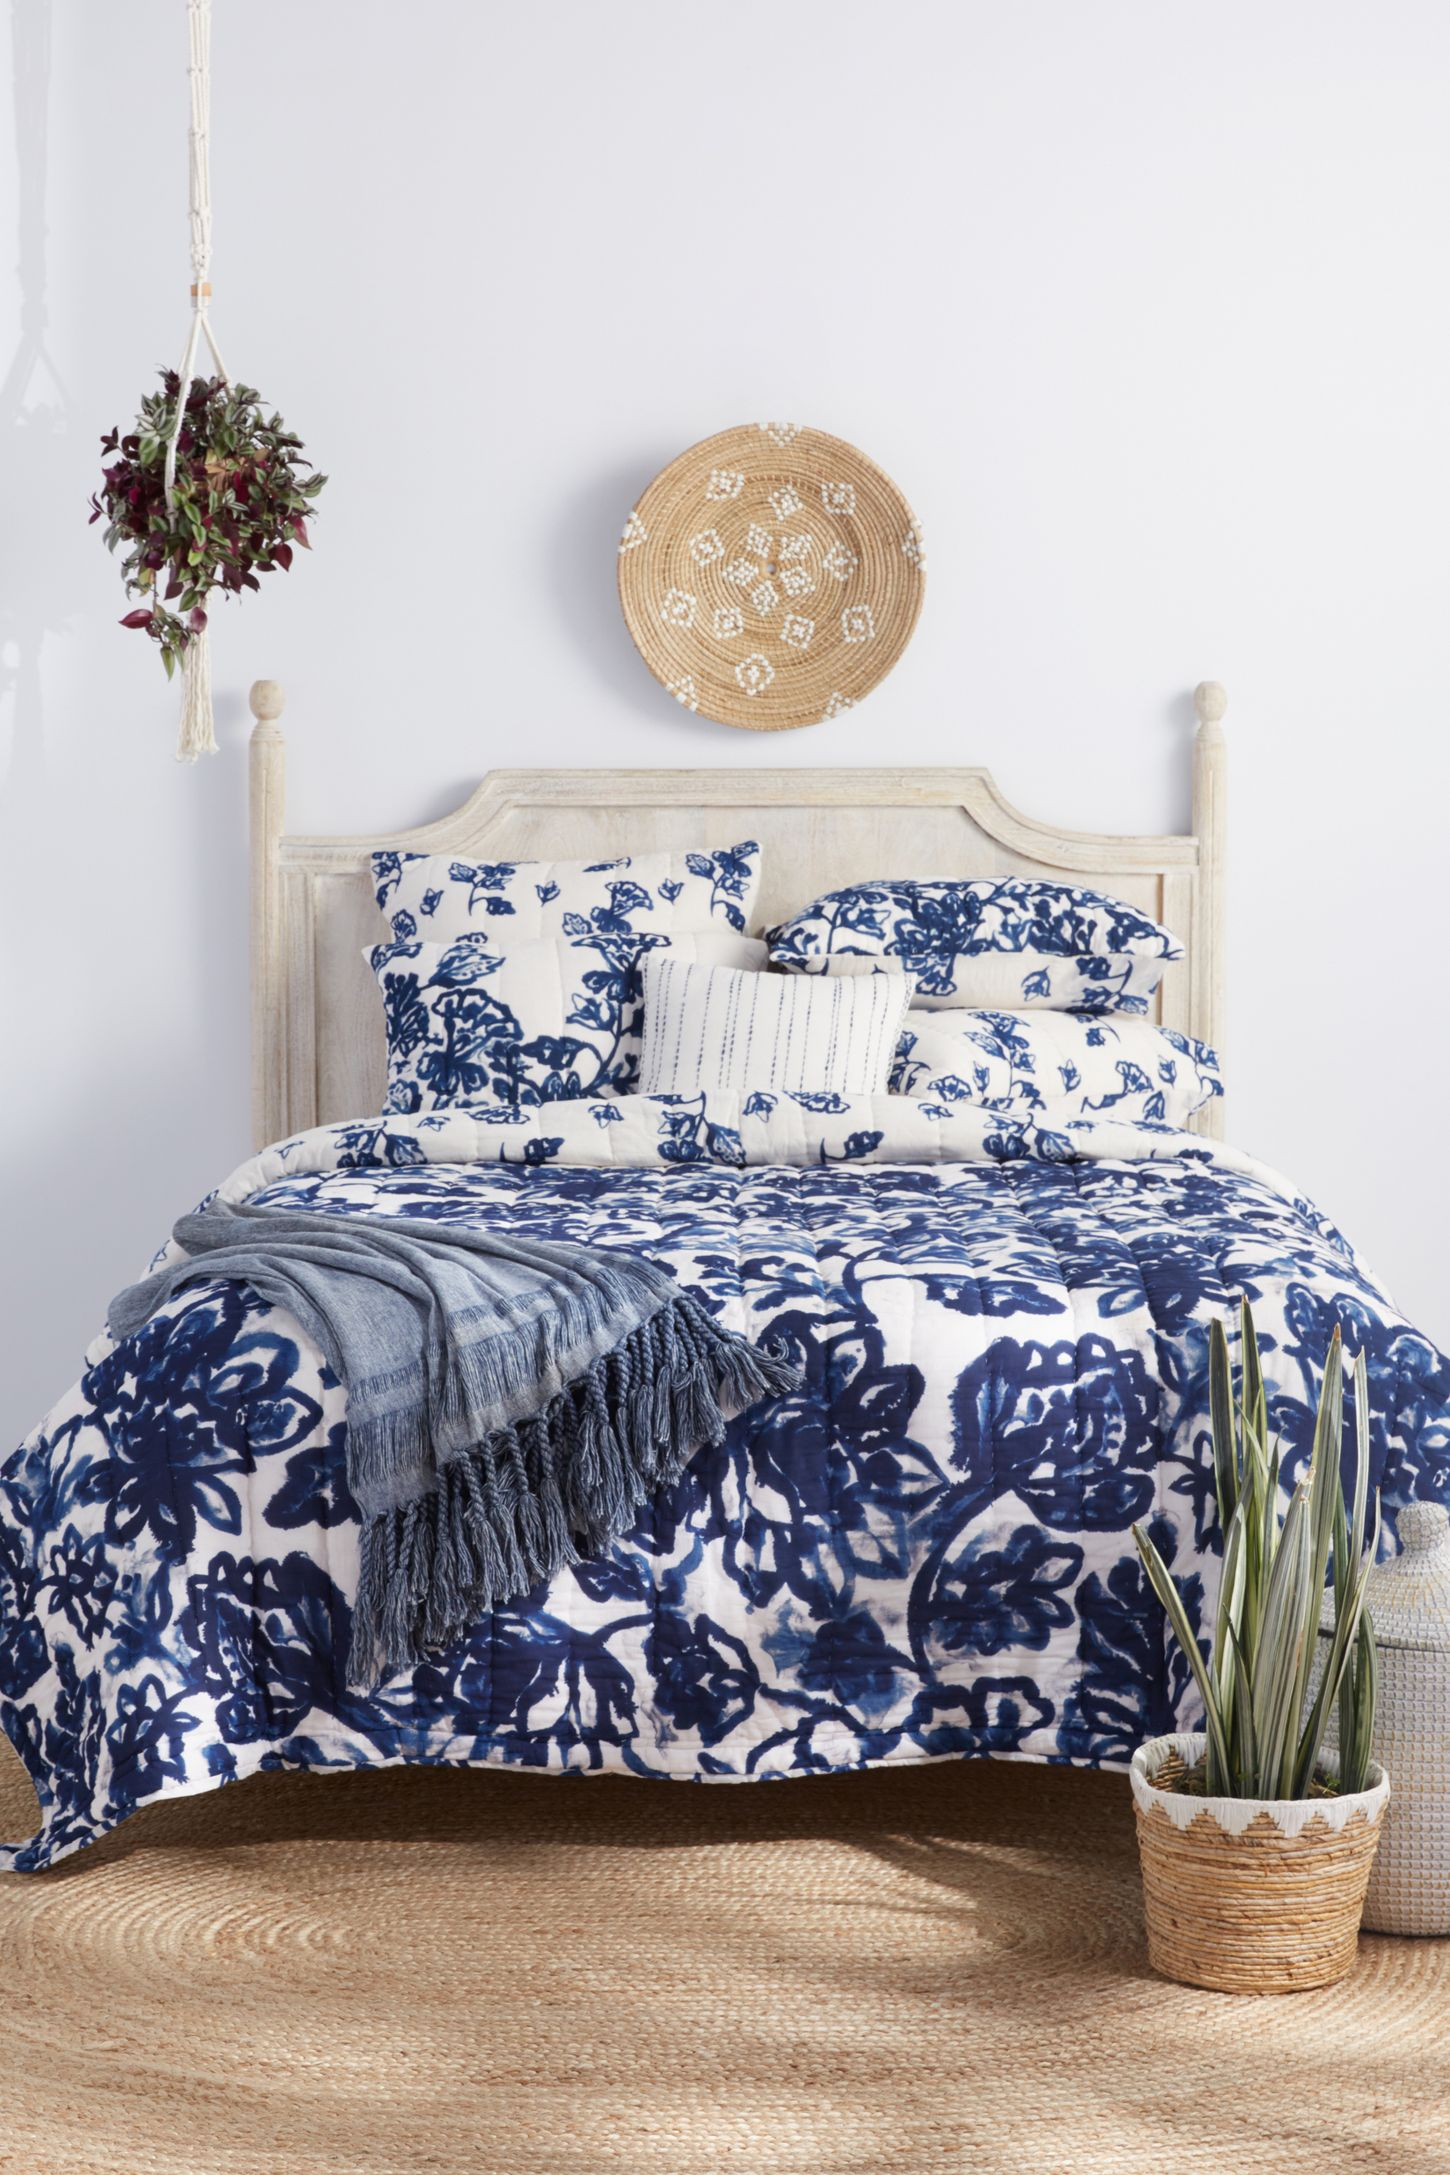 gh reversible quilts dazzling king nordstrom comforters levtex bedding and aubrie contemporary multipurpose colt coverlets quilt captivating